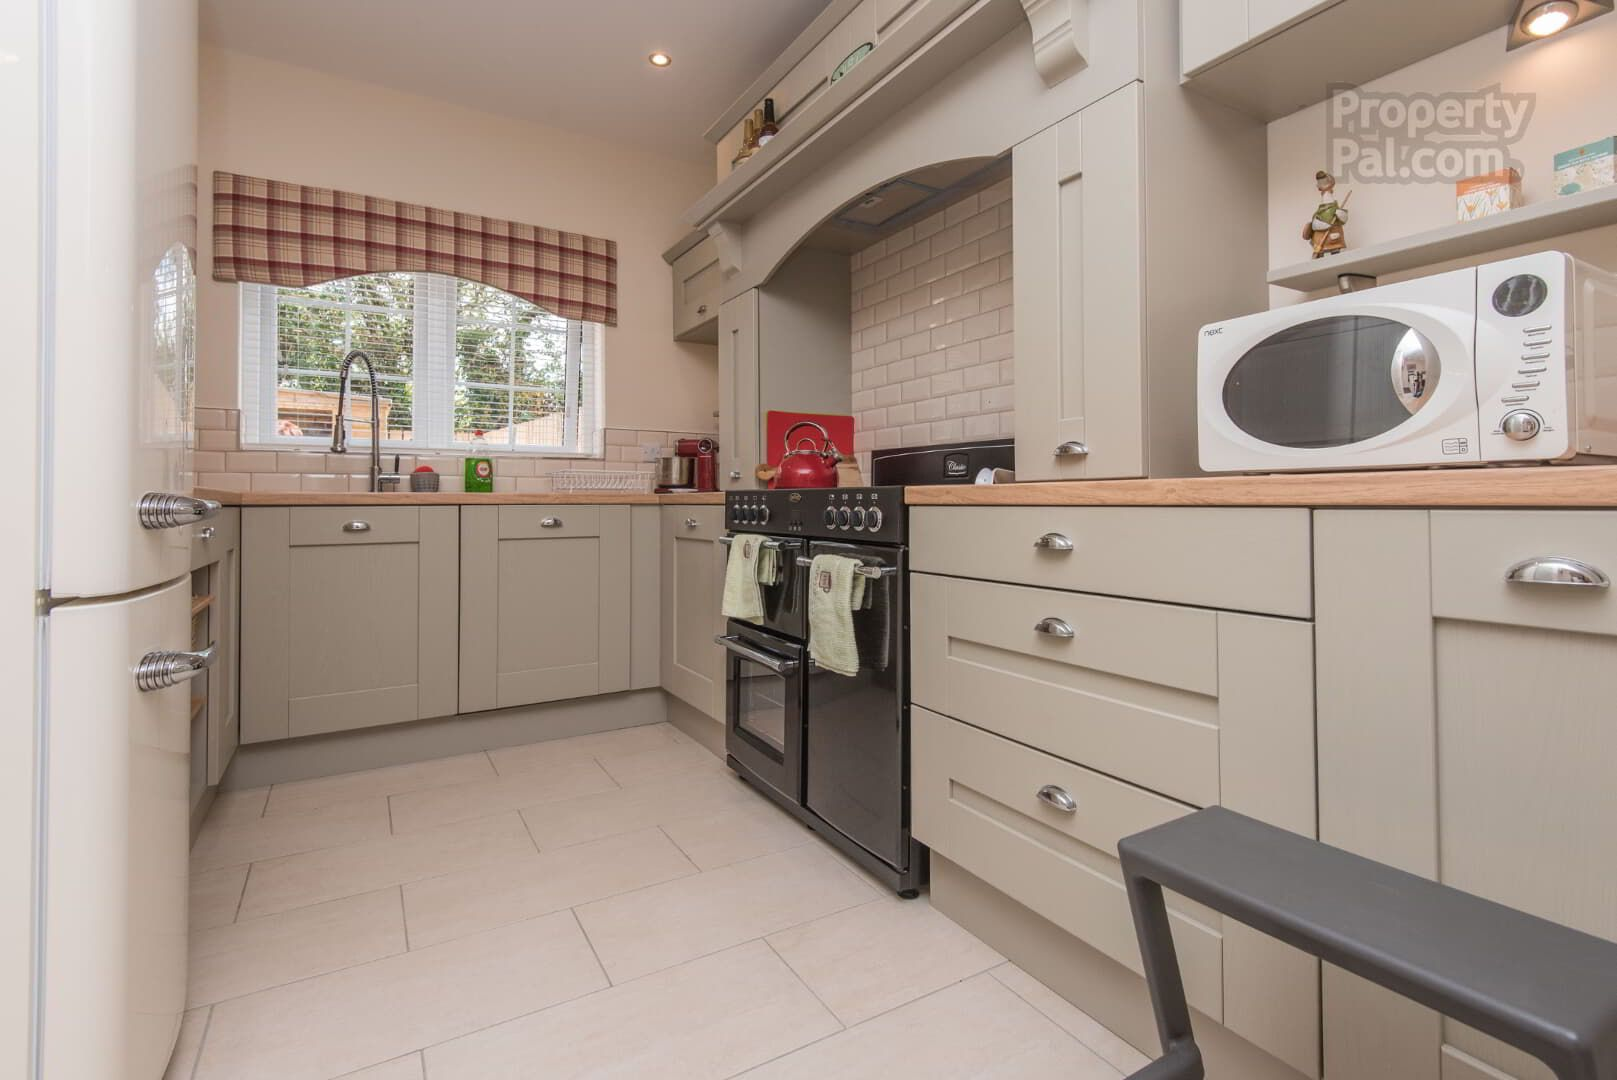 23 Spinners Drive, Armagh Home appliances, Kitchen